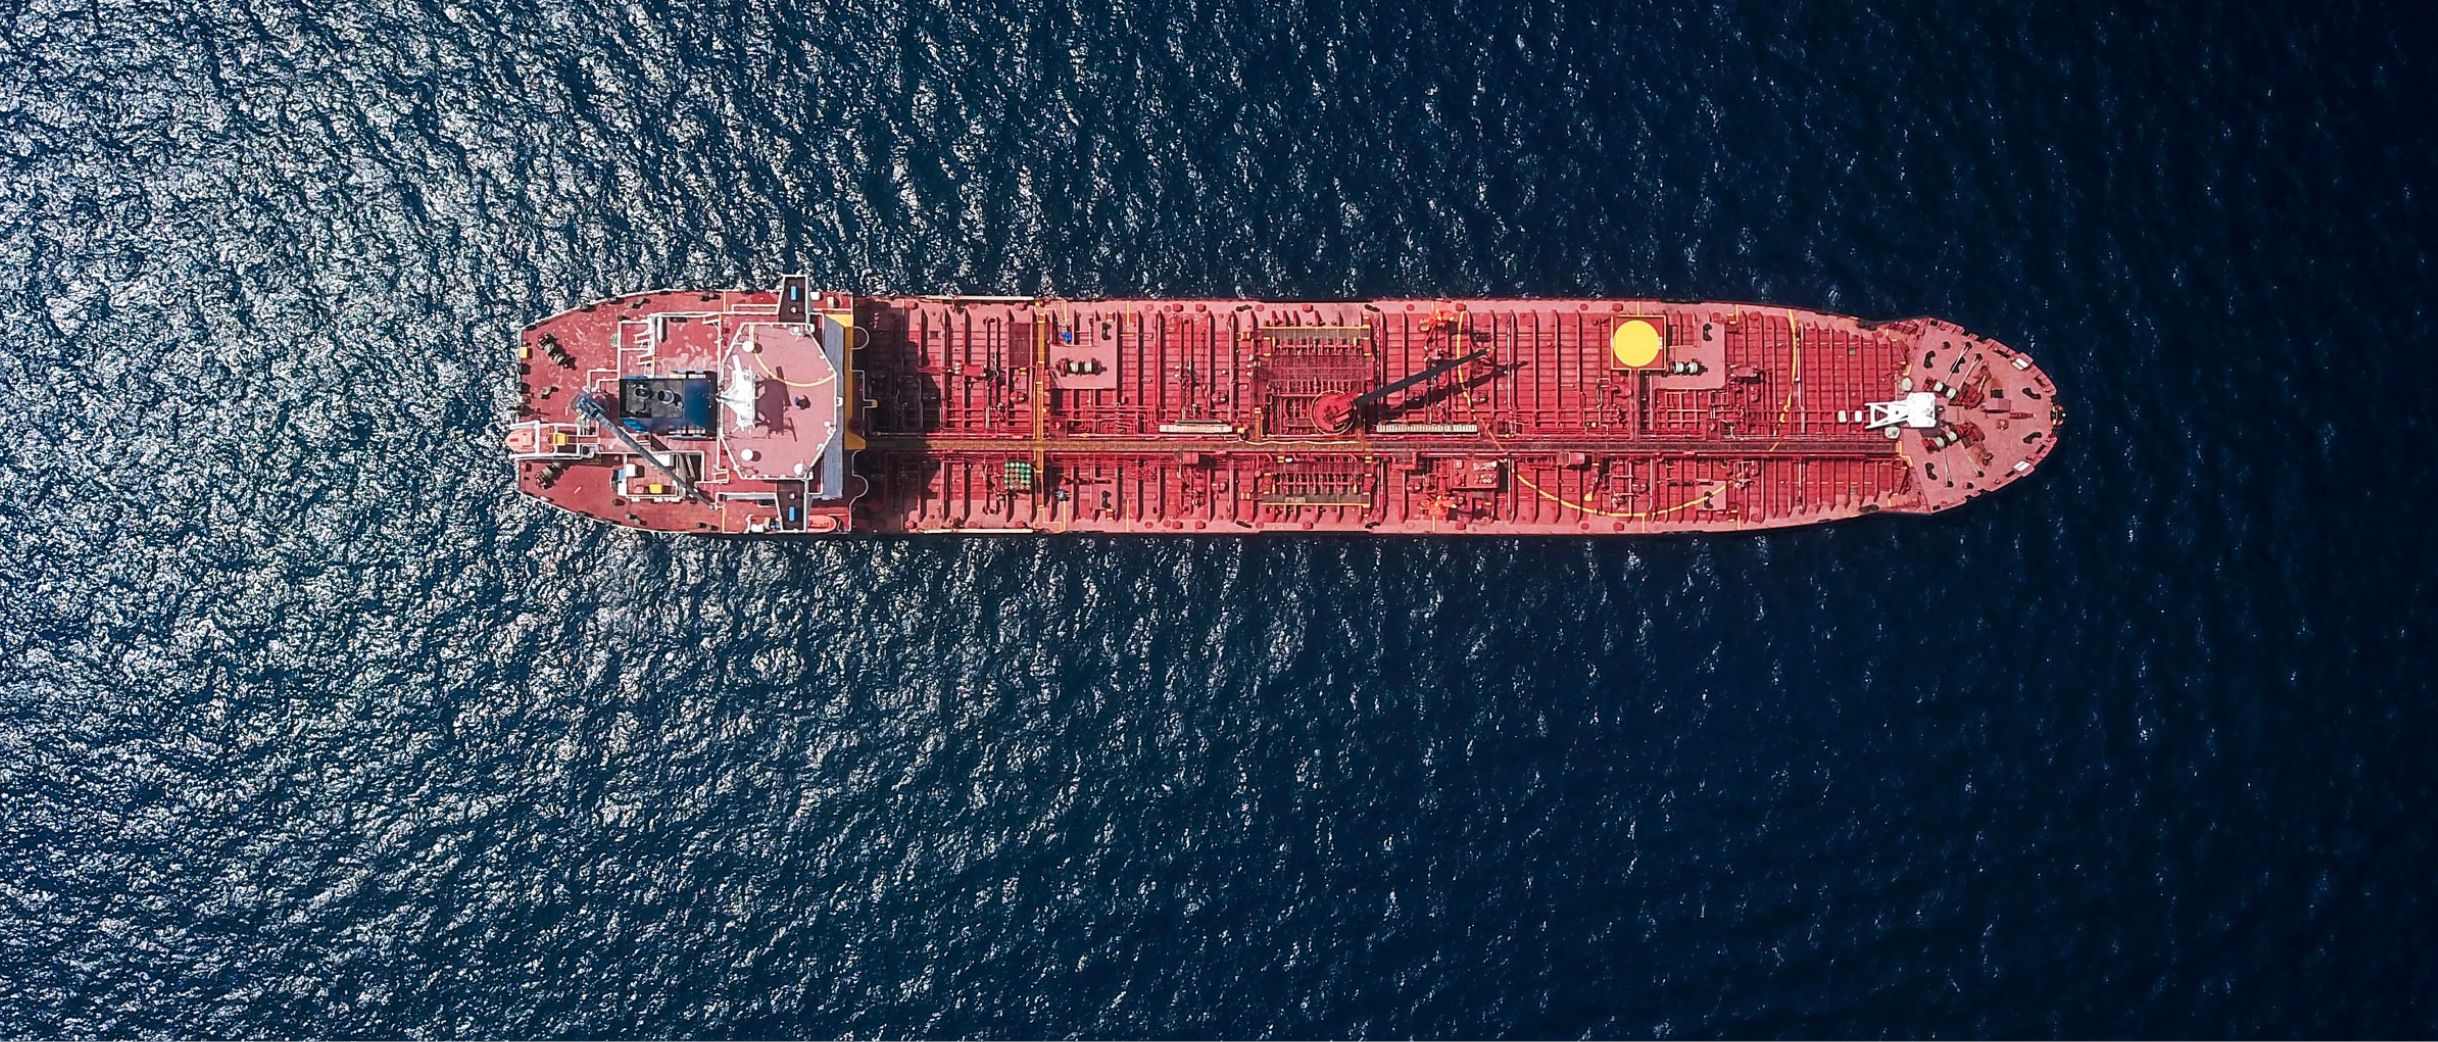 Aerial view of a ship surrounded by water. Photocredit: Shaah Shahidh, Unsplash